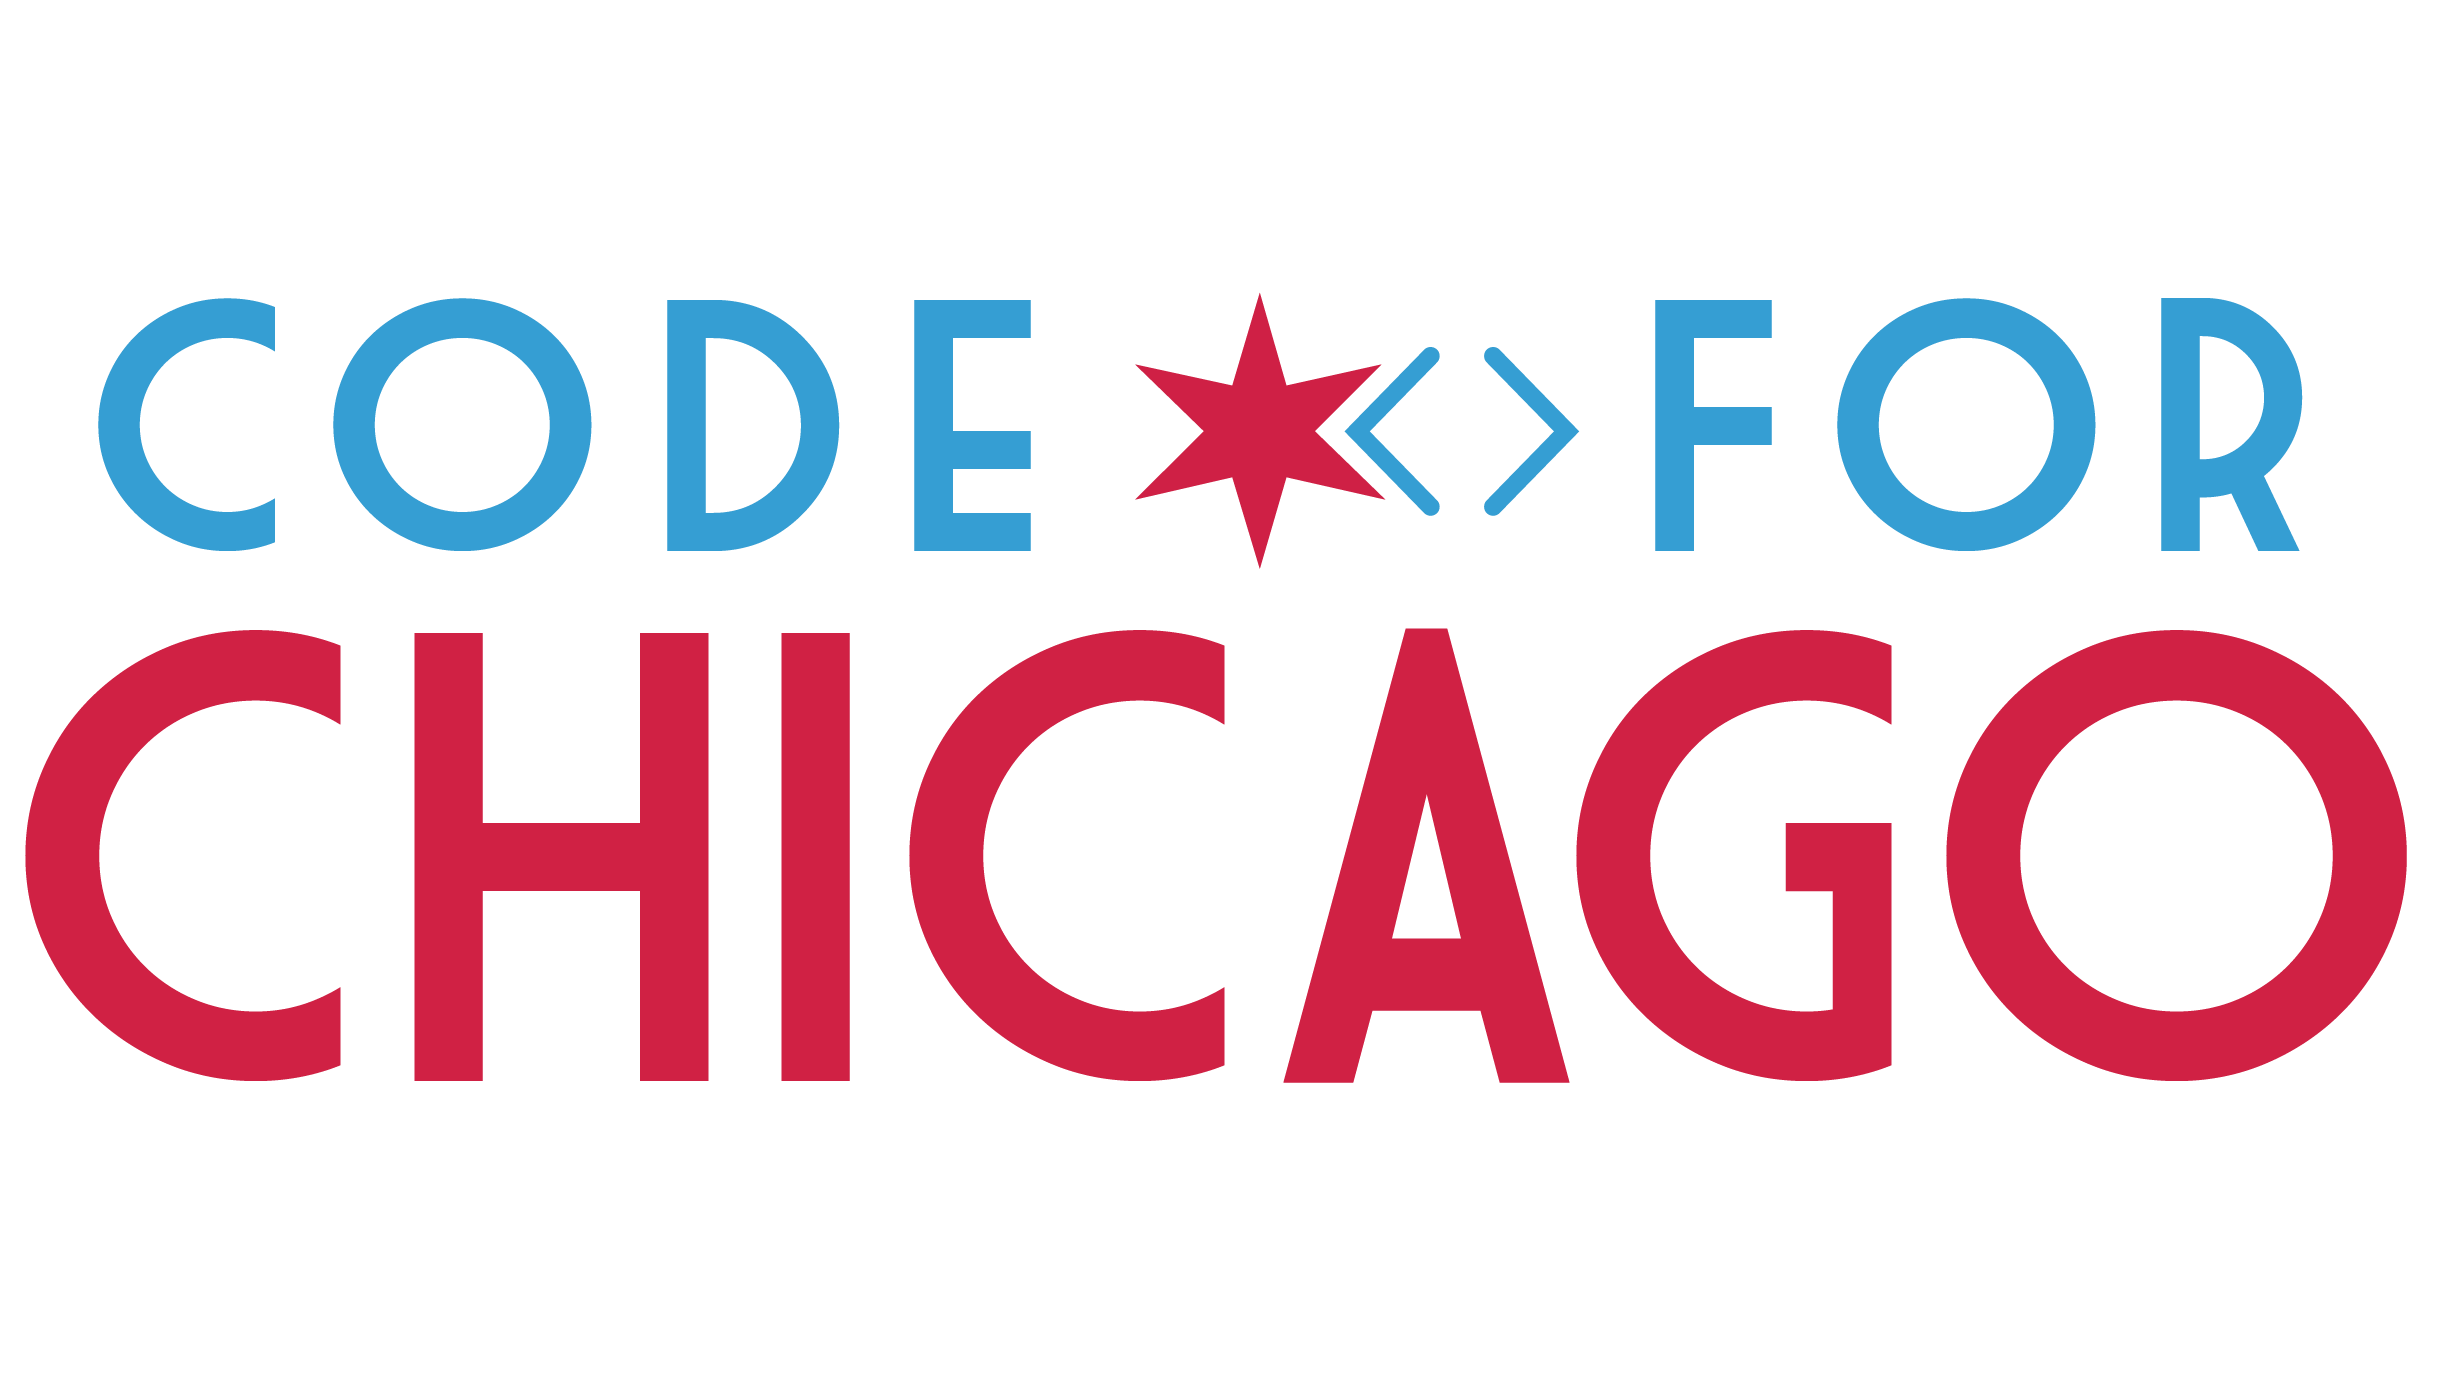 Code for Chicago